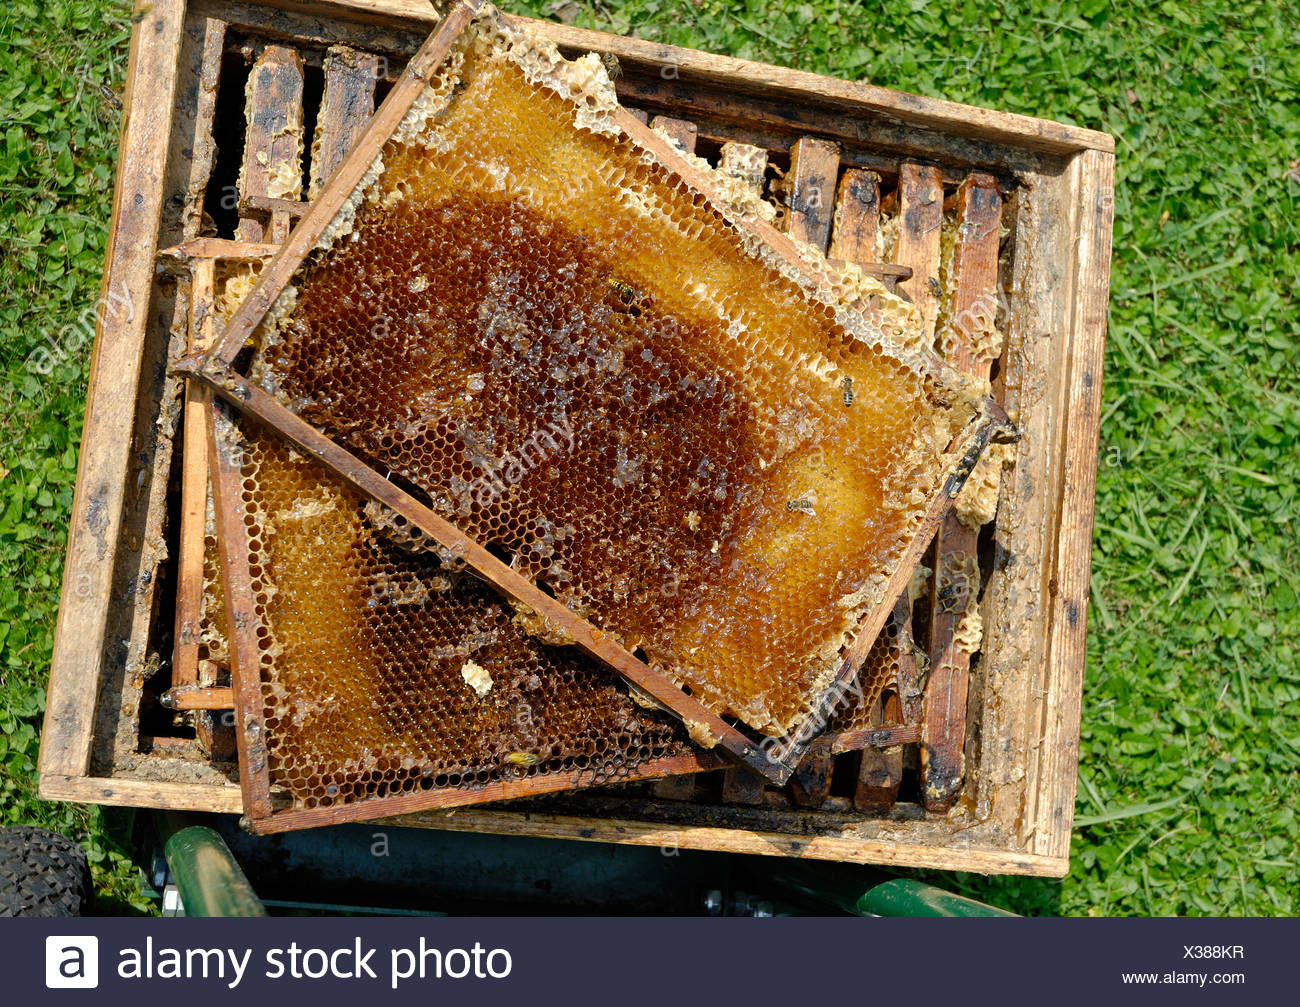 Recently strained, empty honeycombs - Stock Image